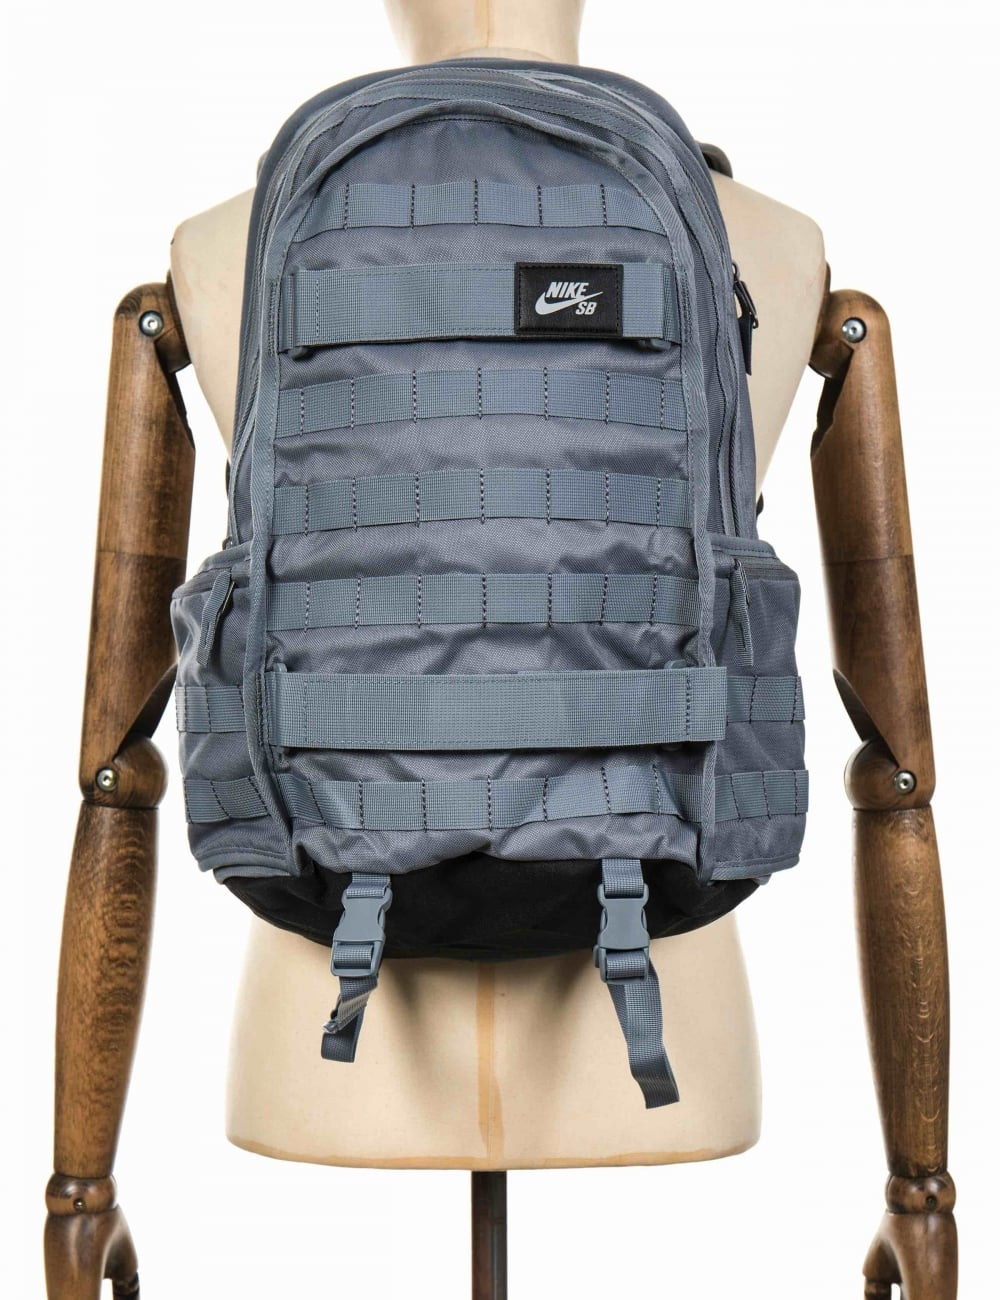 191419fd45a Nike SB RPM Backpack - Thunder Grey - Accessories from Fat Buddha ...